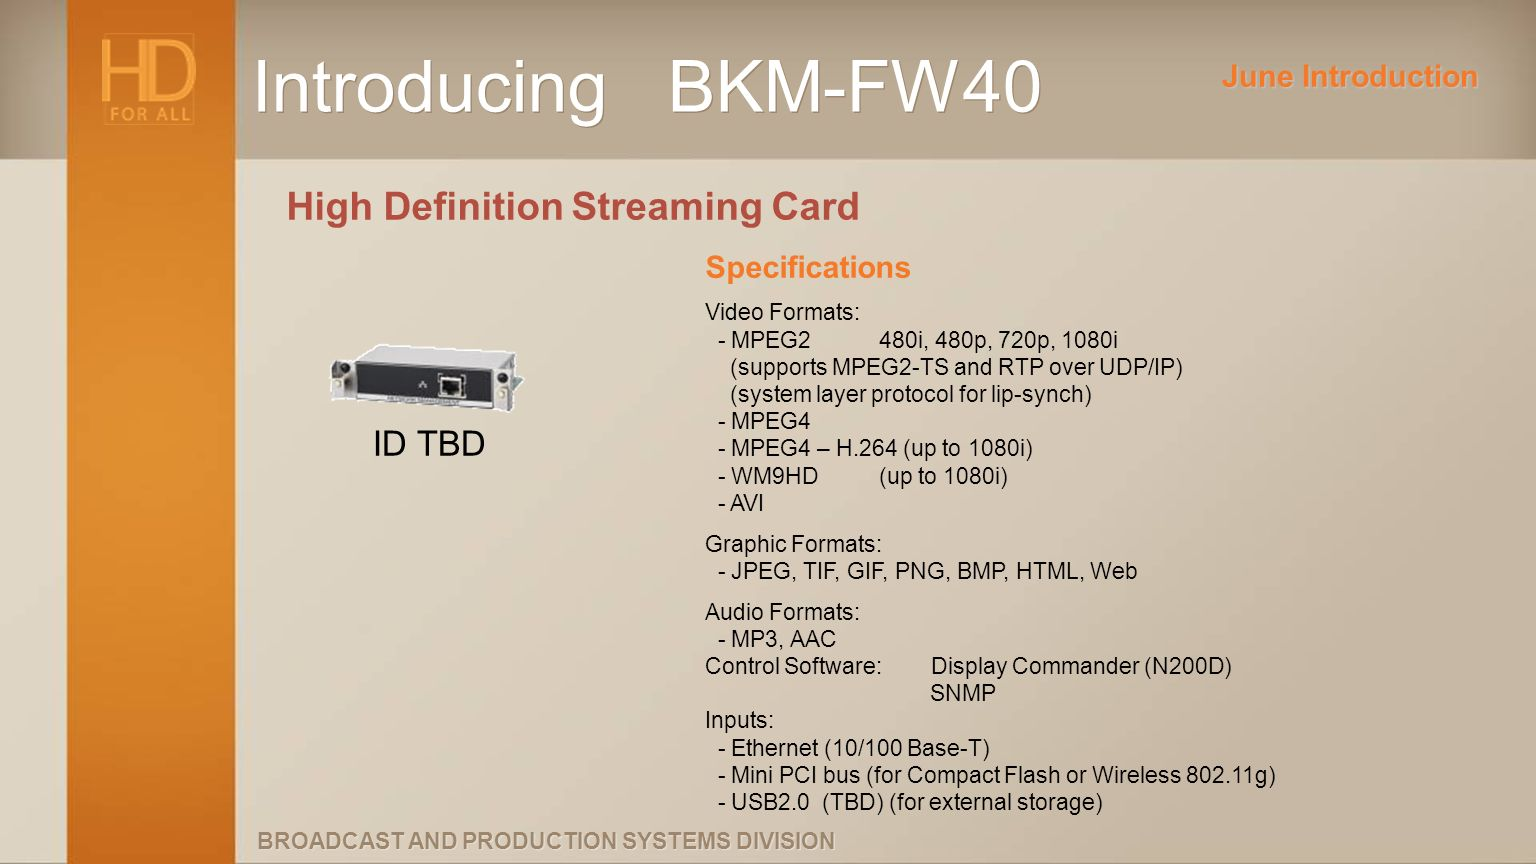 BROADCAST AND PRODUCTION SYSTEMS DIVISION Introducing BKM-FW40 High Definition Streaming Card Specifications Video Formats: - MPEG2480i, 480p, 720p, 1